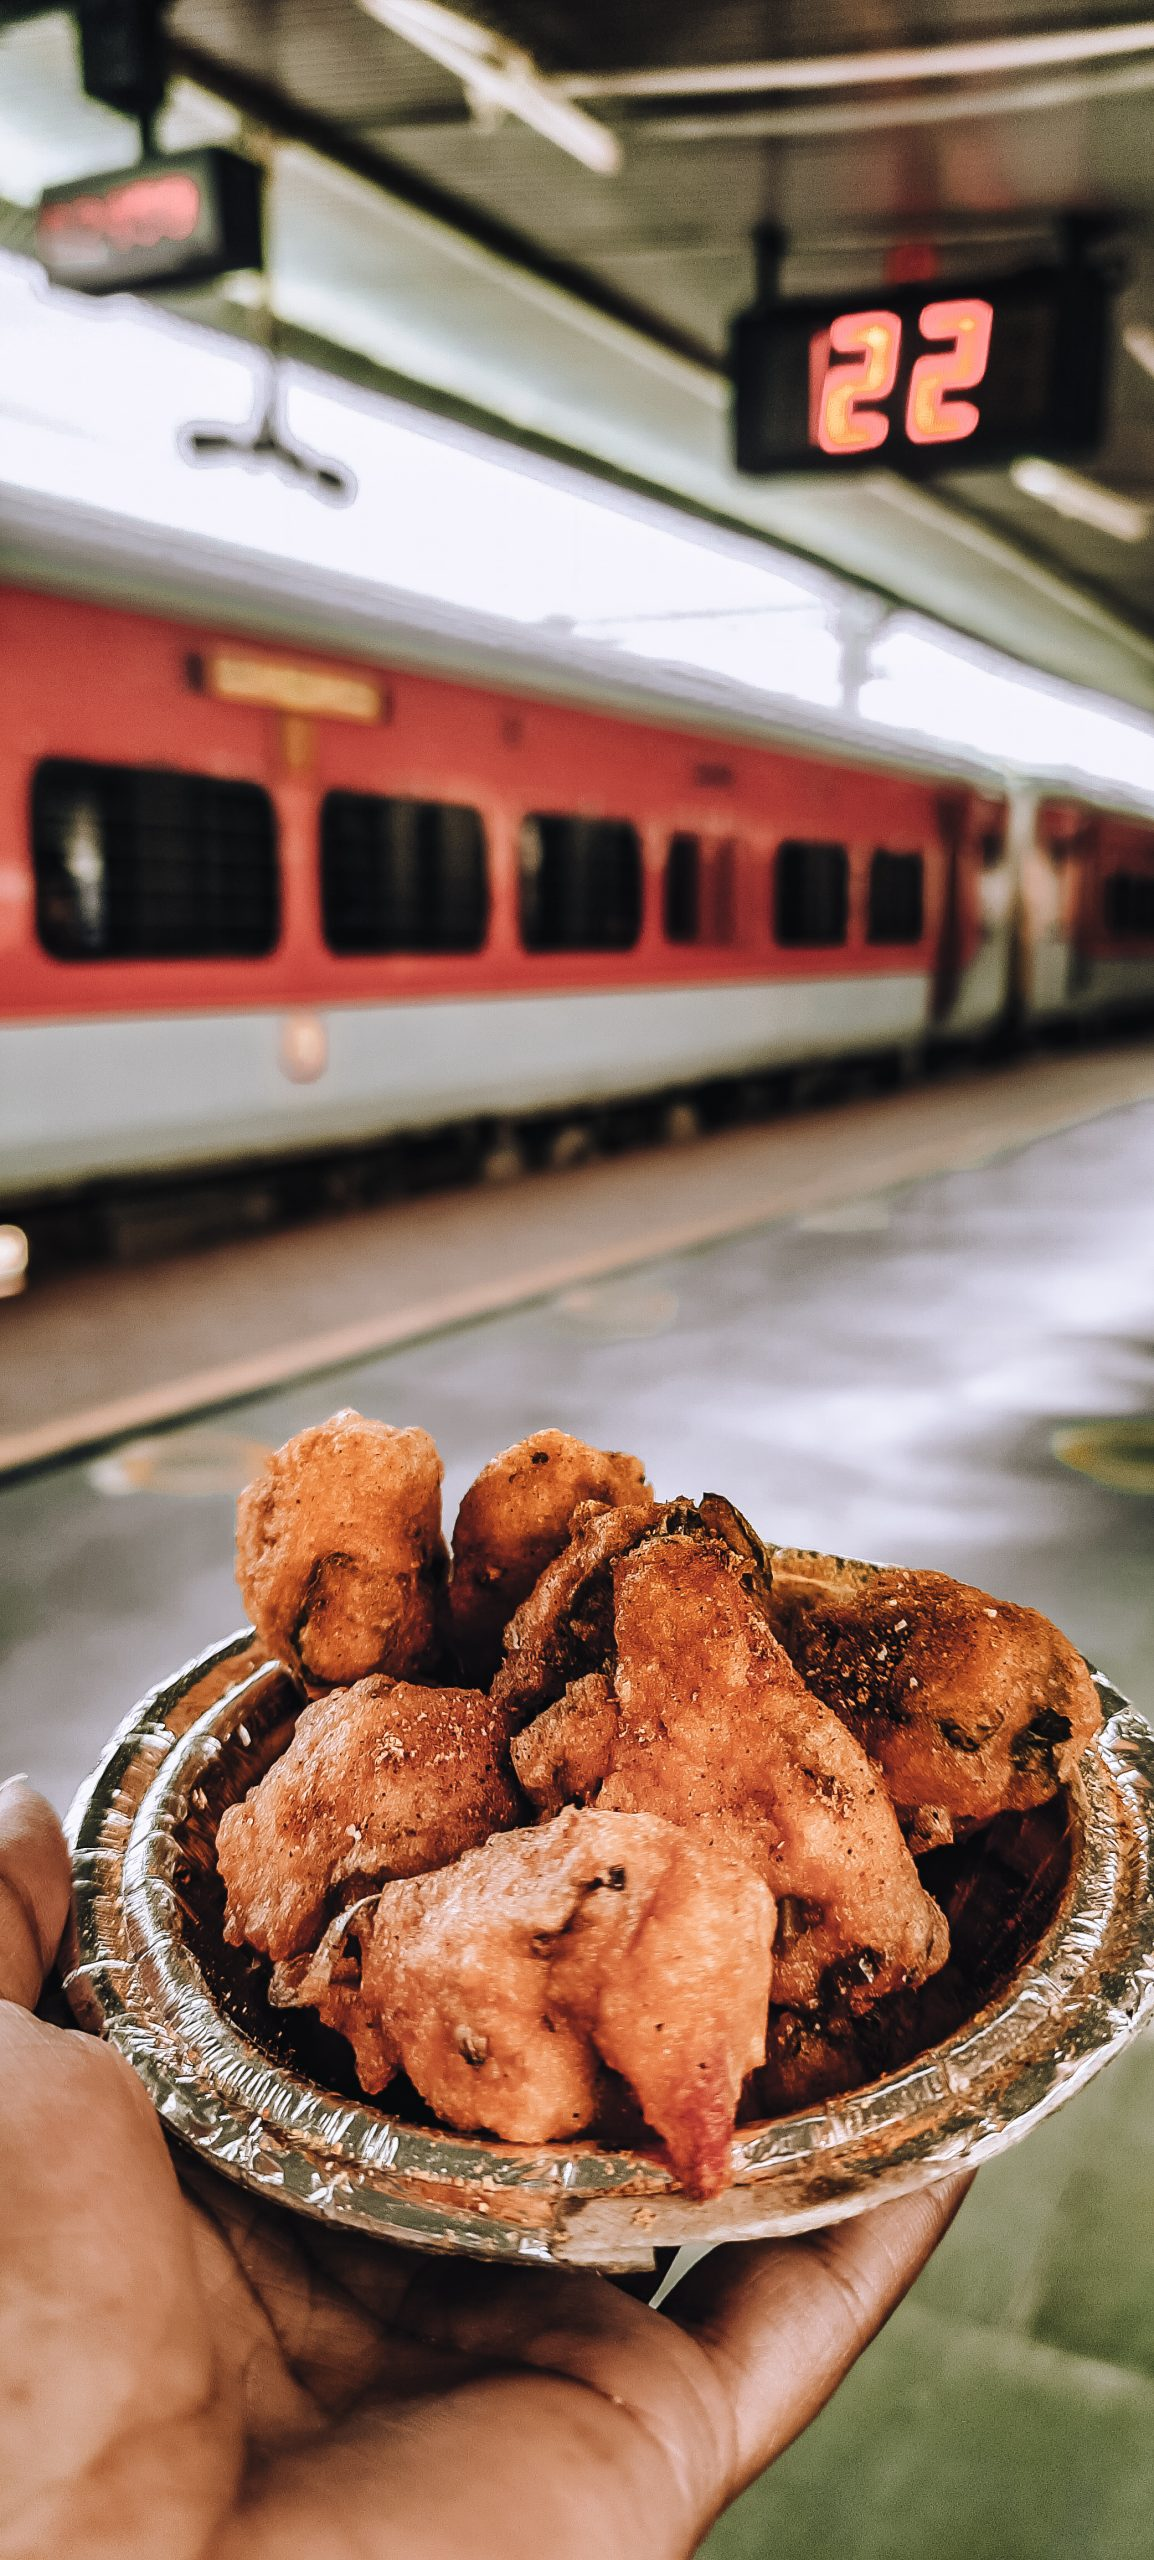 Snacks in the hand on railway station